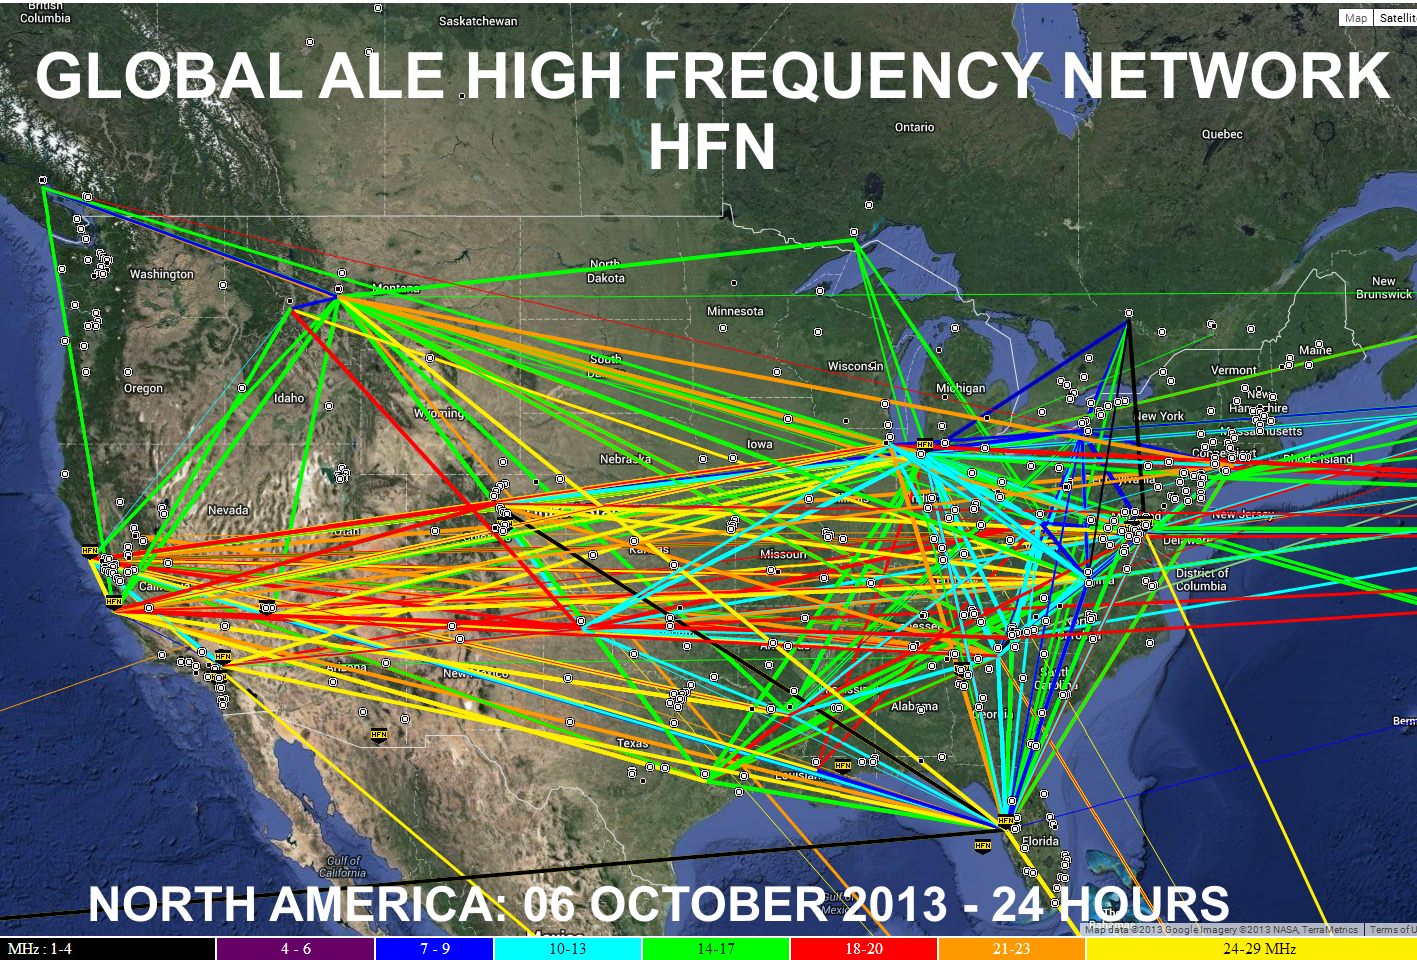 ZOOM: Map Snapshot of HFN Network (North America) during HFIE2013 October